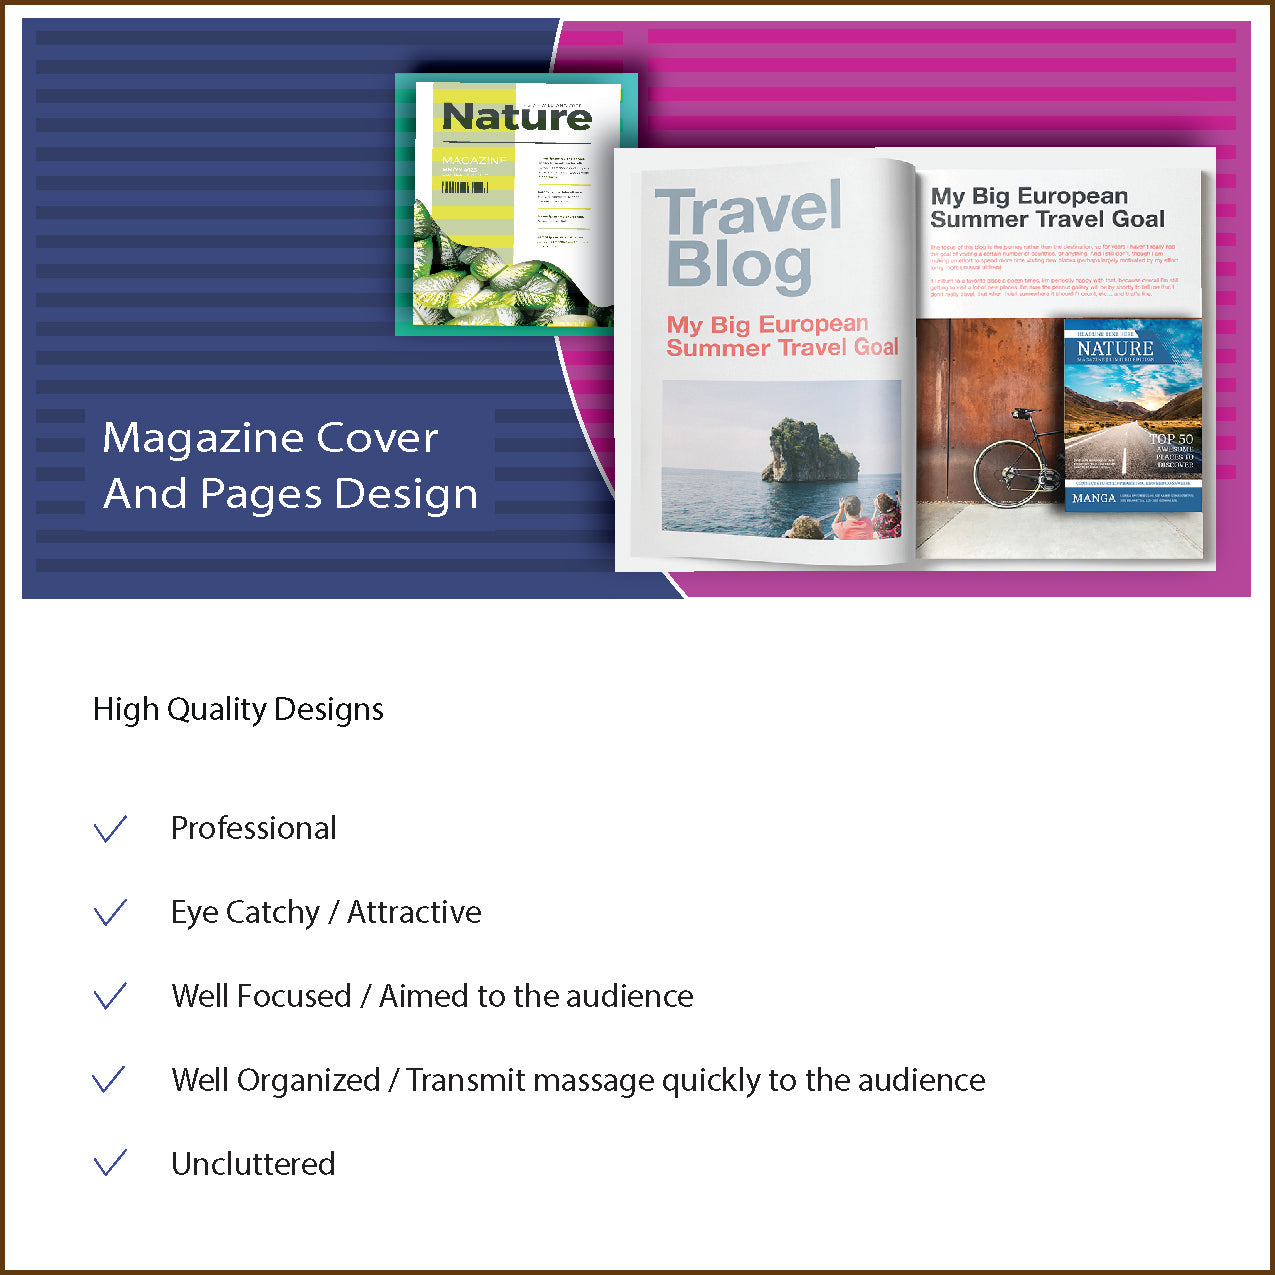 Magazine Cover and pages Design